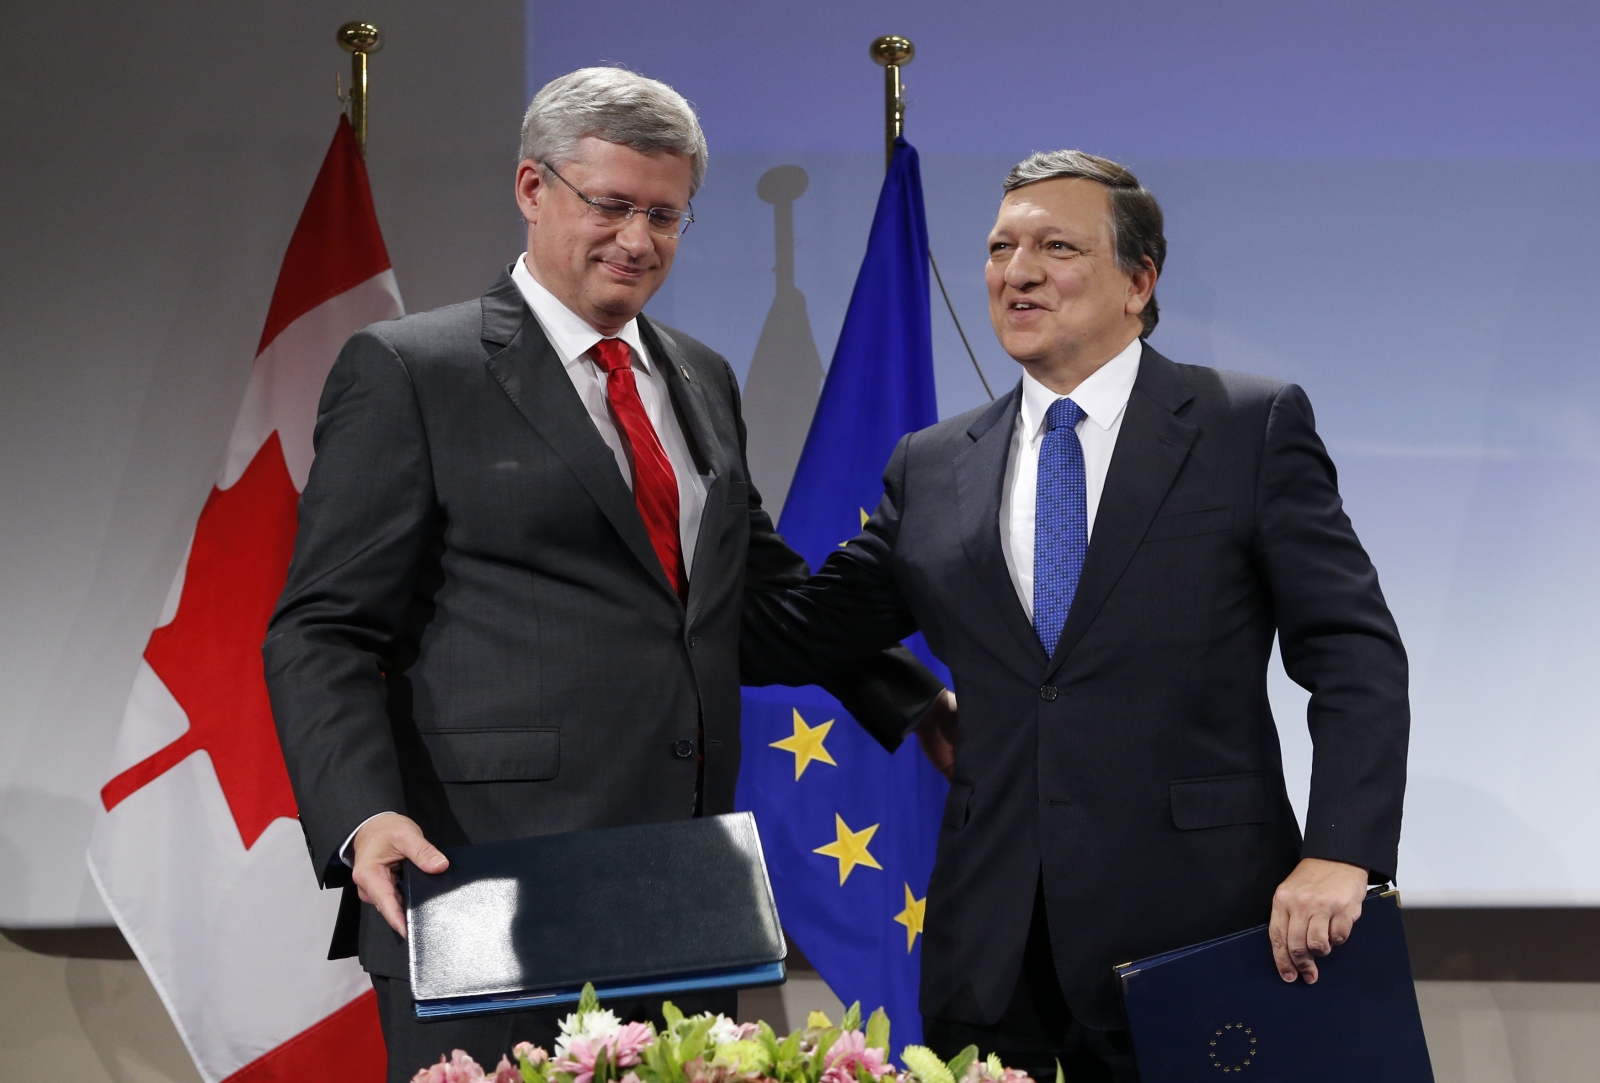 Canada And Eu Finalise Free Trade Agreement Described As Template